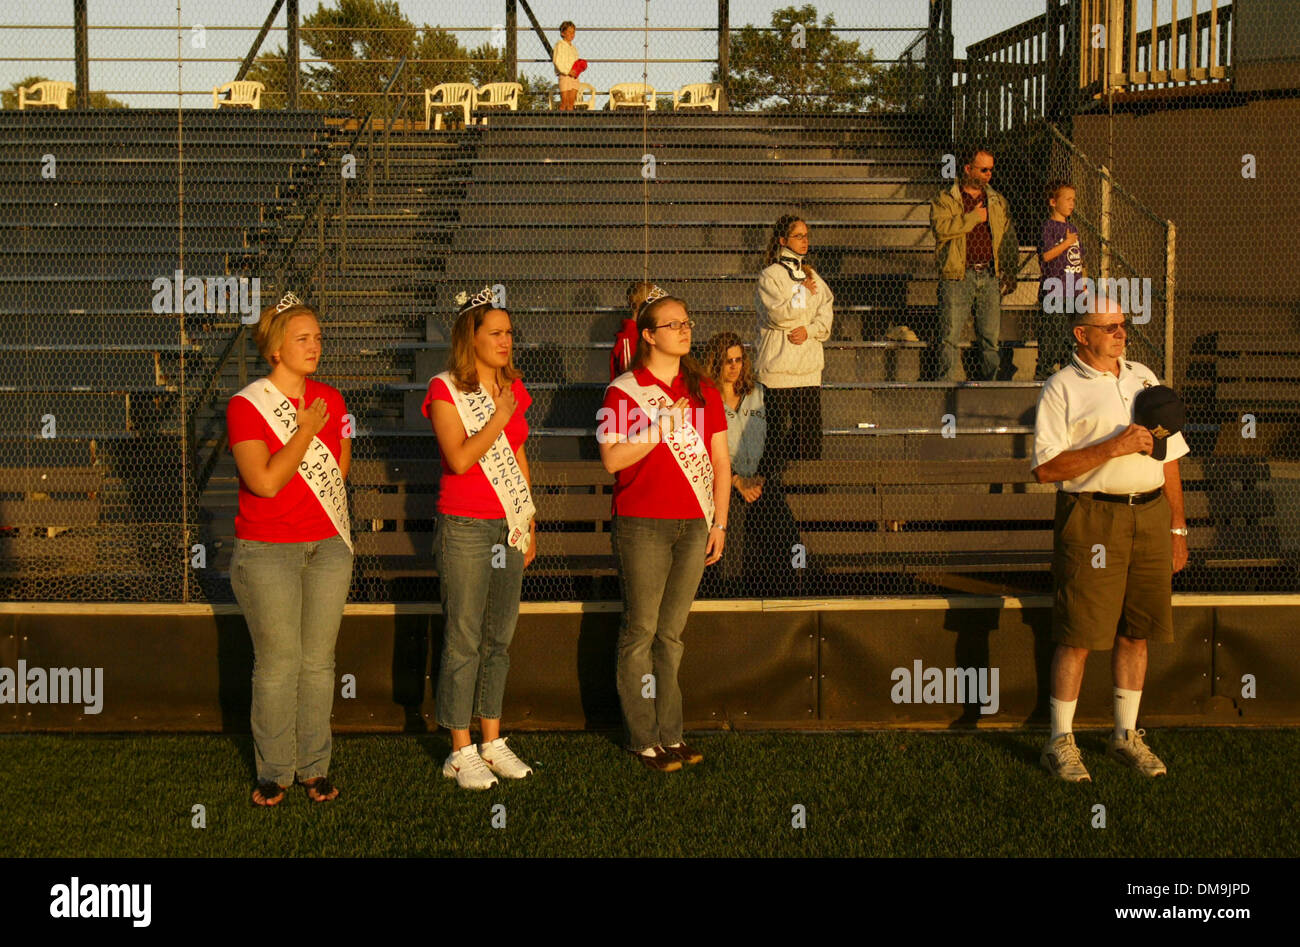 Jul 27, 2005; Miesville, MN, USA; Three Dakota County Dairy Princesses were on the field during the national anthem before the Miesville Mudhens met the Eau Claire Cavaliers in July of last year. They are, from left, Tanya Reuter, Allison Brand, and Sara Bremer. The Miesville Mudhens are a classic 'Townball' amateur baseball team that plays their home games at Jack Ruhr Field in Mi - Stock Image